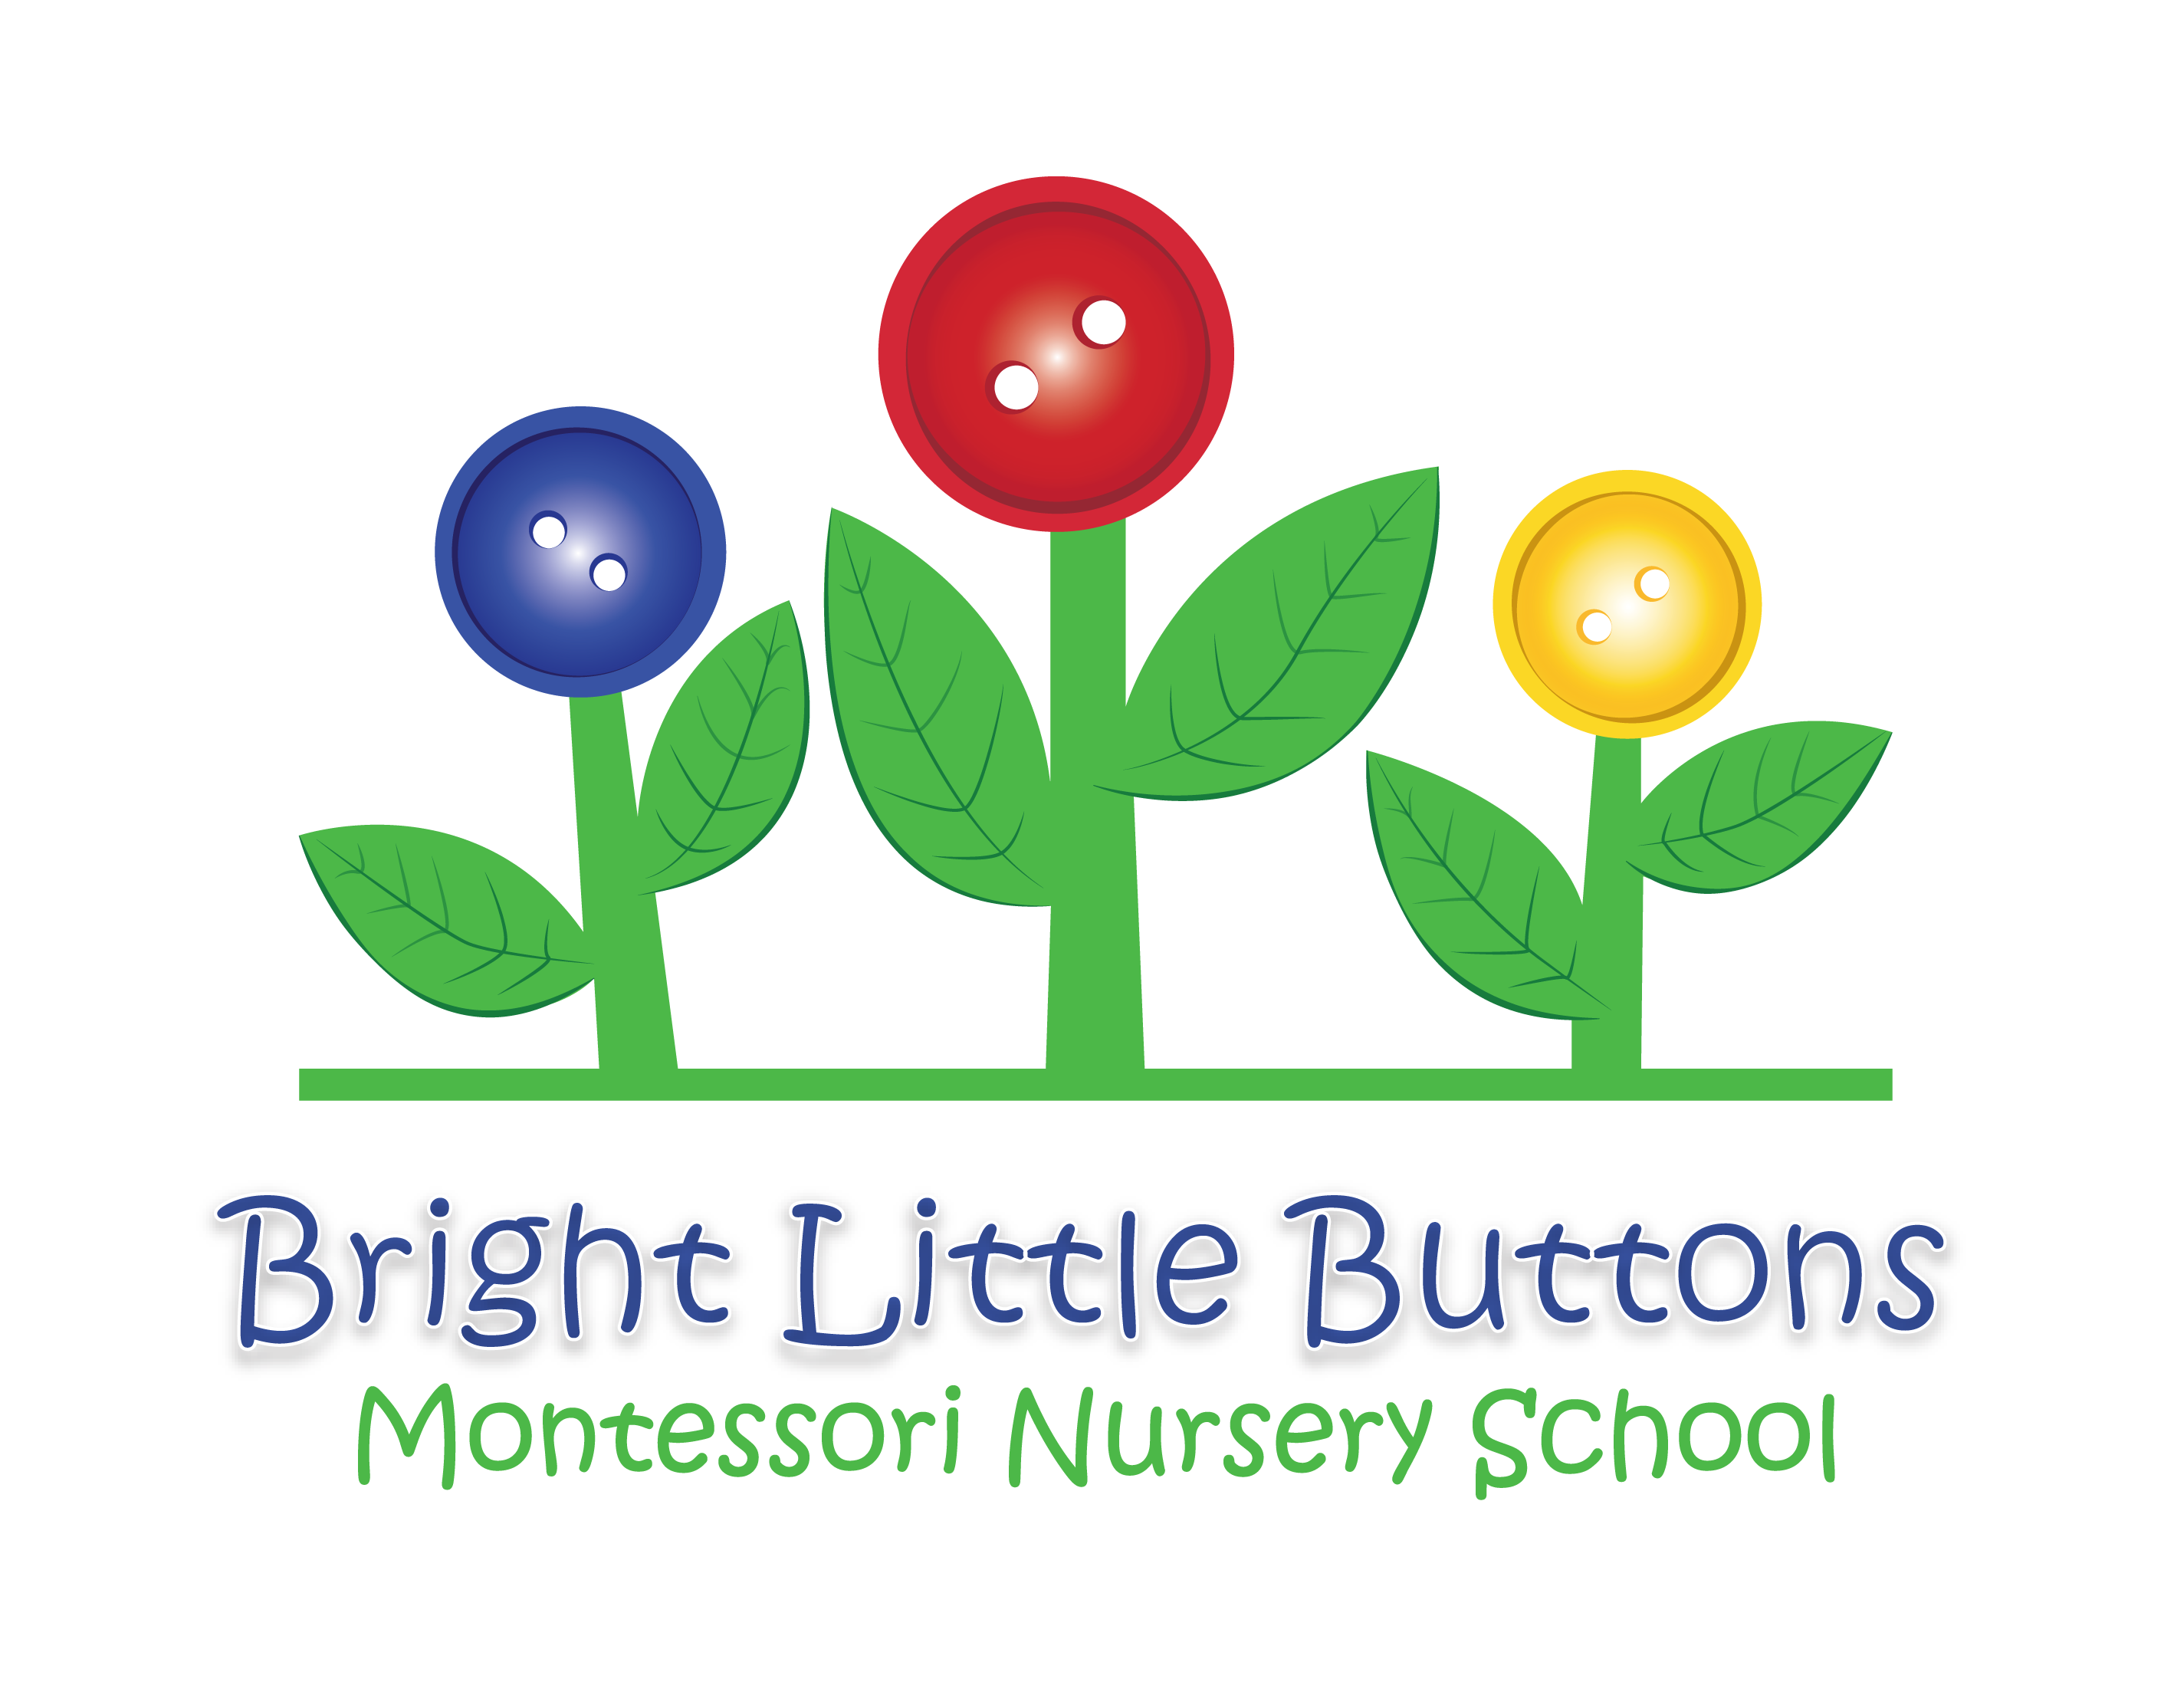 Bright Little Buttons